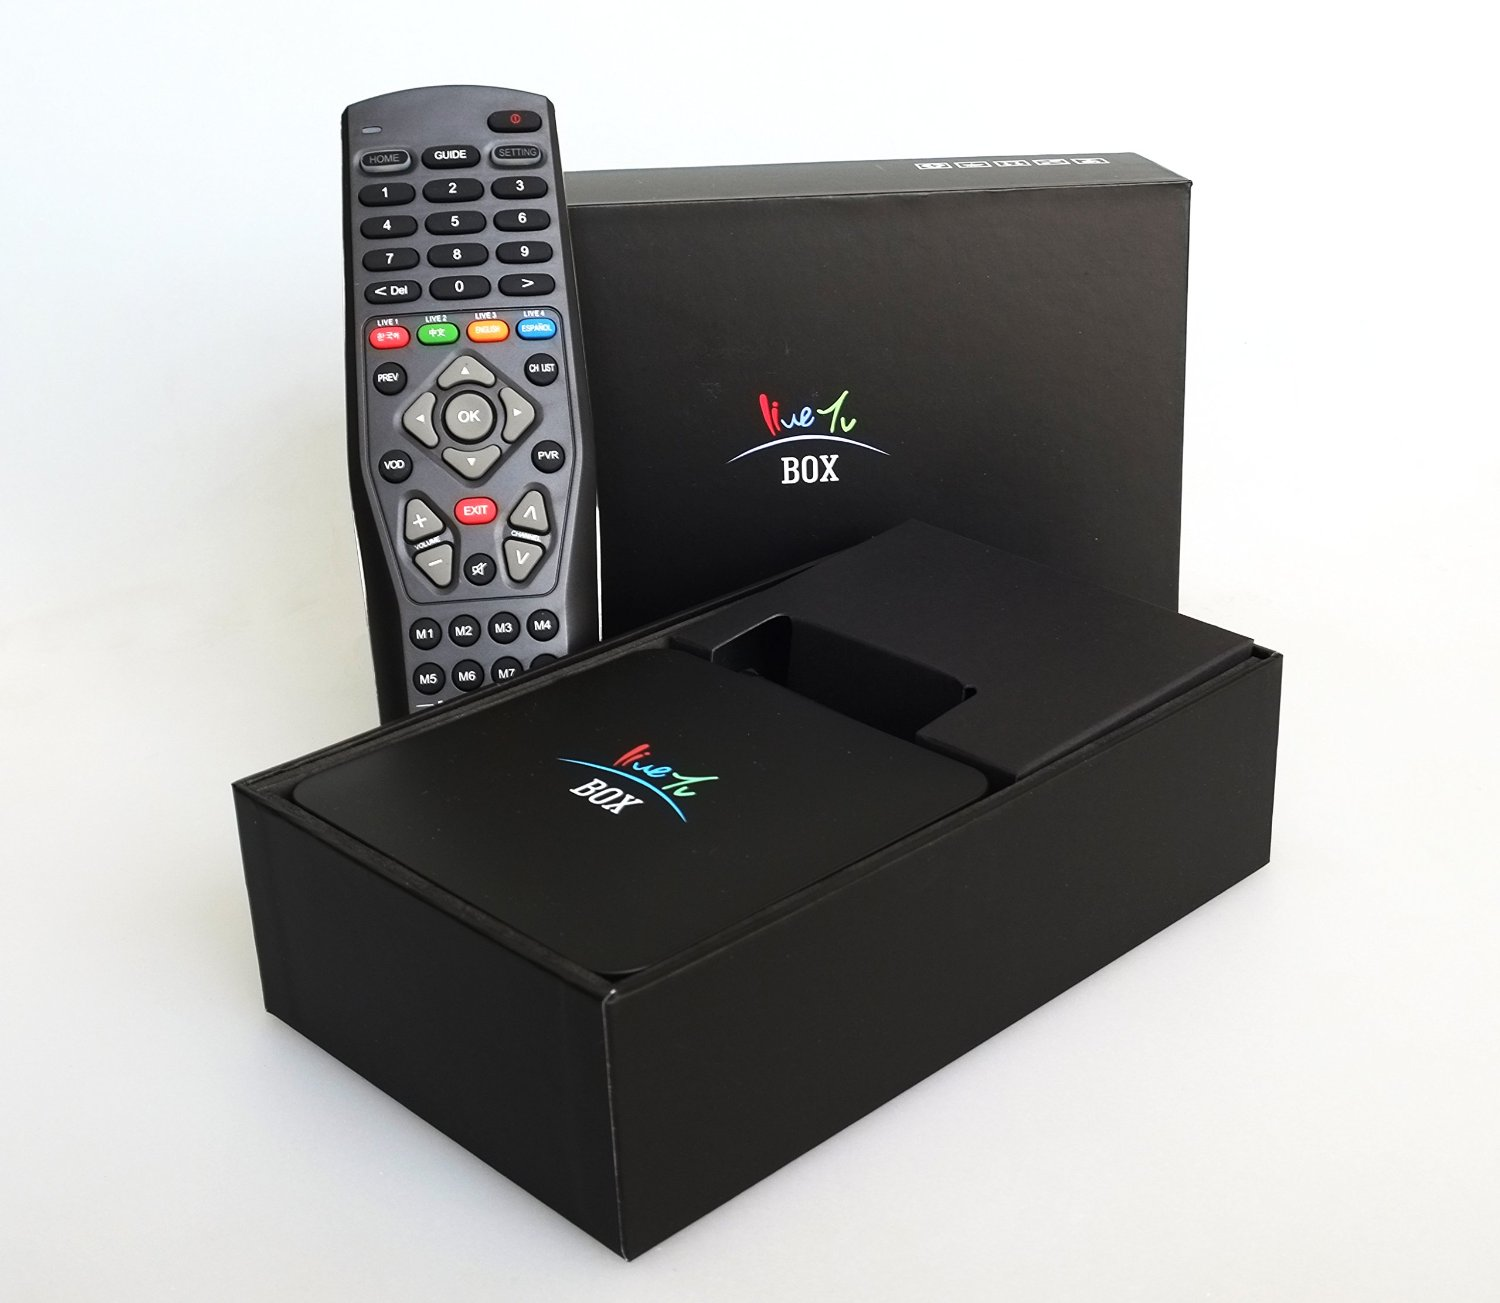 Korean TV (2nd Generation) HomeTVBox Real LIVE Korean and English Channels Smart Media Player. NO Monthly Fee